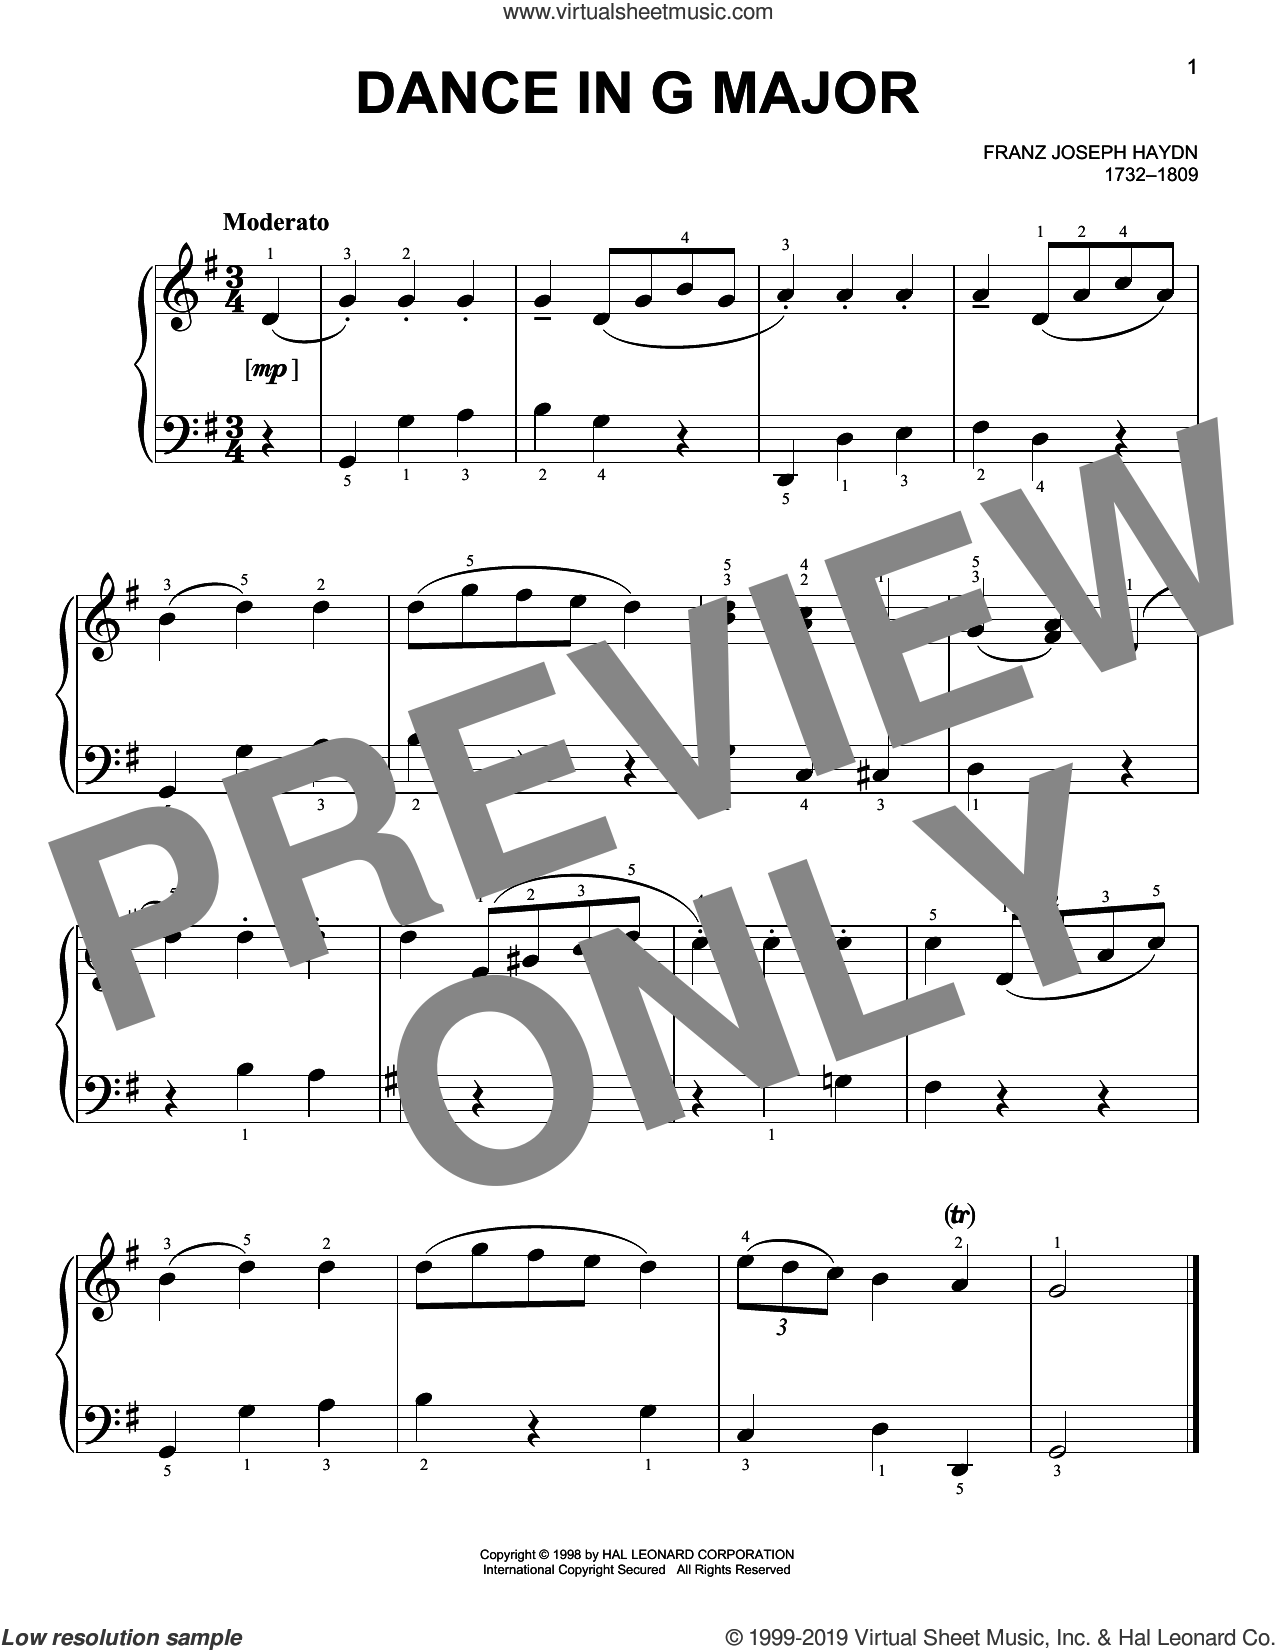 Dance In G Major sheet music for piano solo by Franz Joseph Haydn, classical score, easy skill level